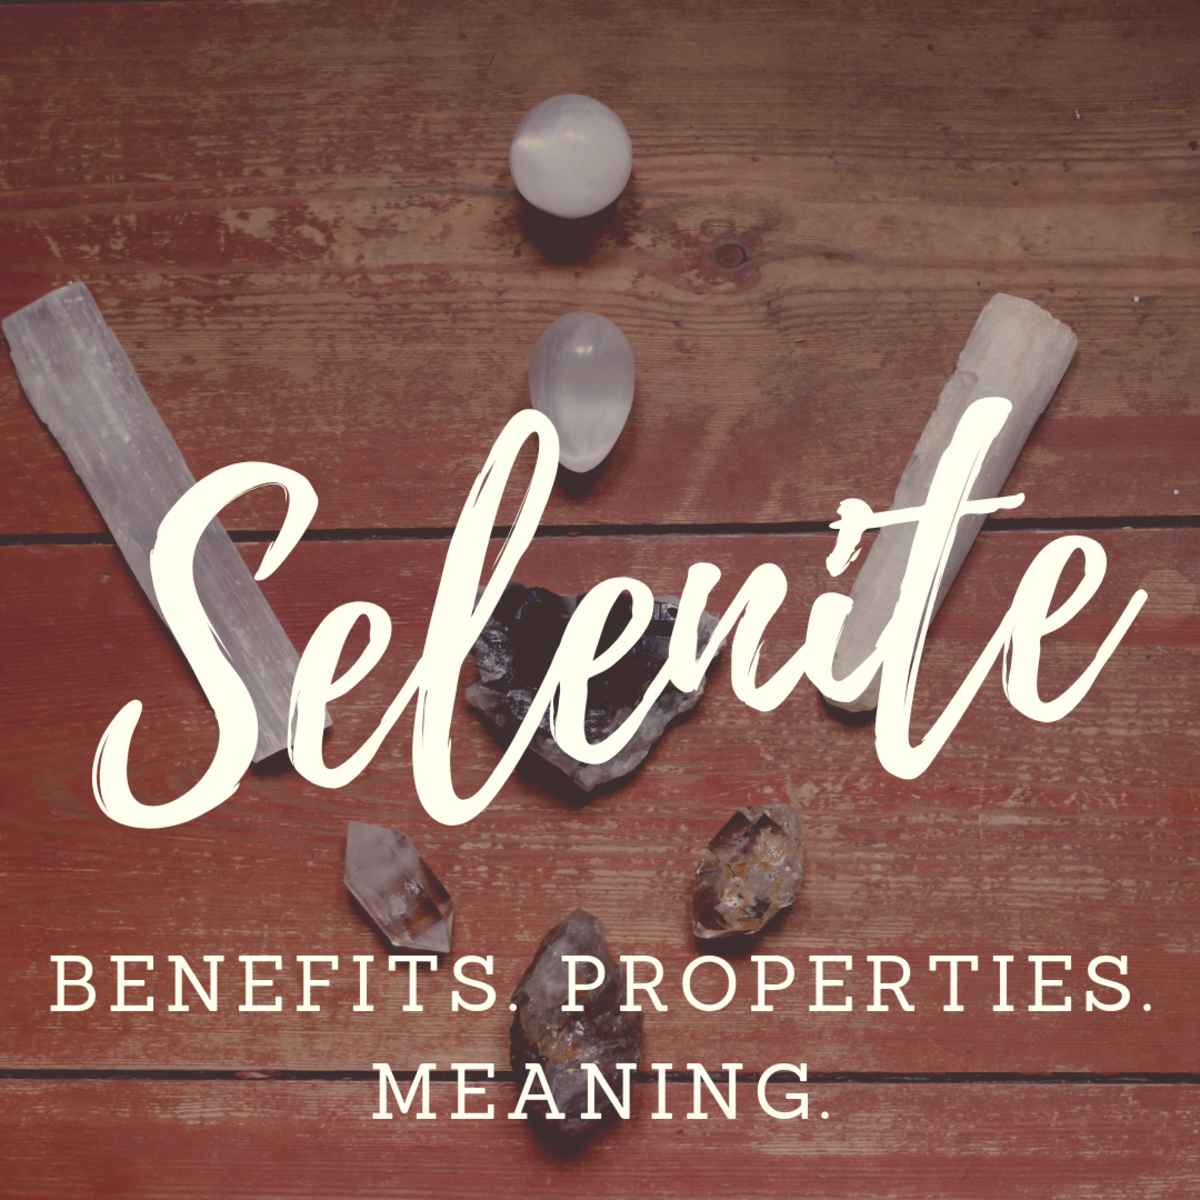 The healing benefits of selenite.